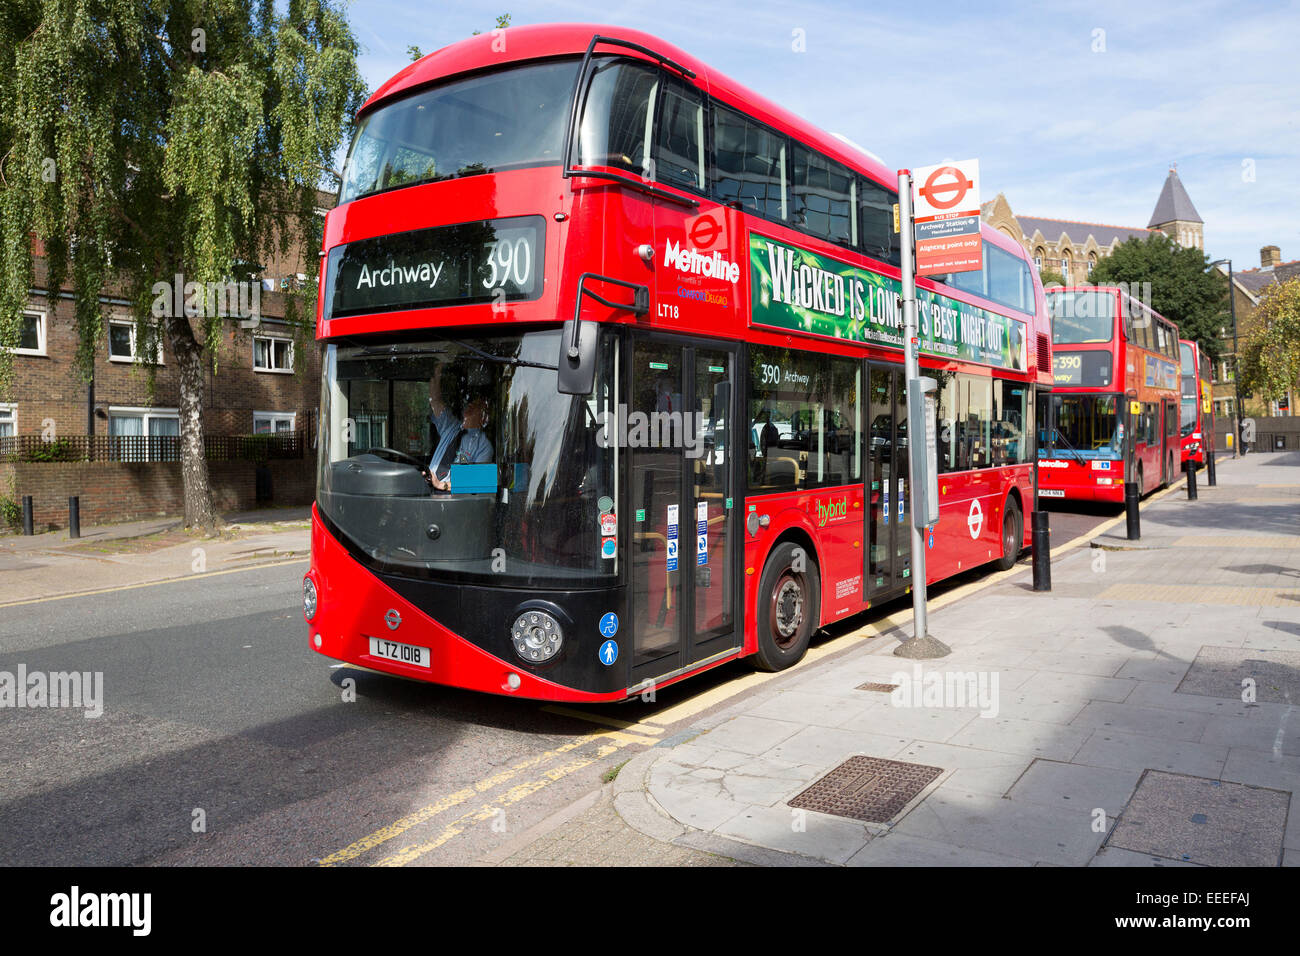 London New Routemaster bus - Stock Image